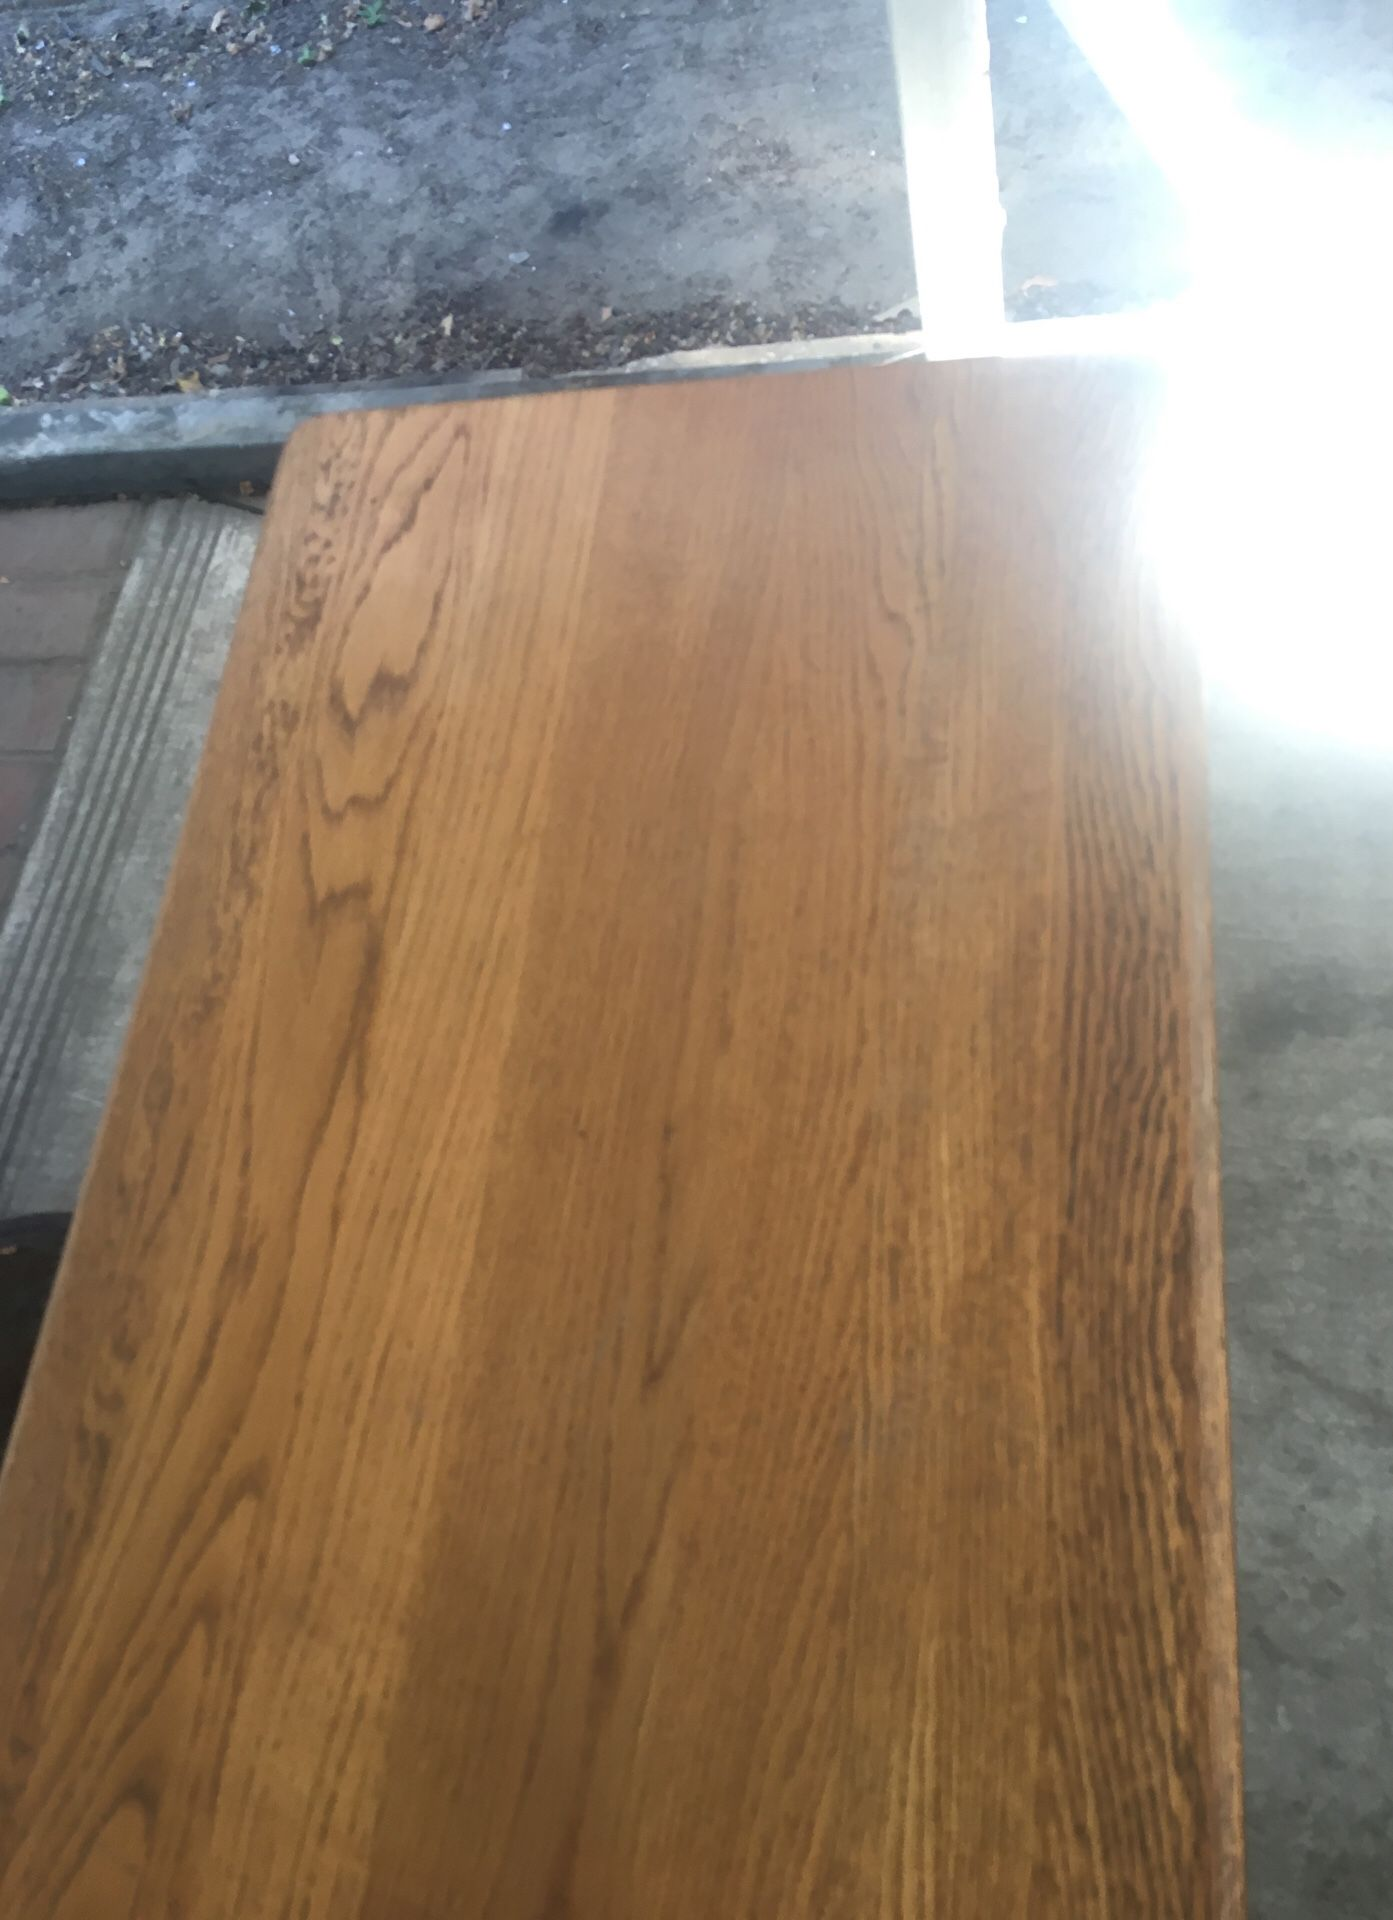 Table $60